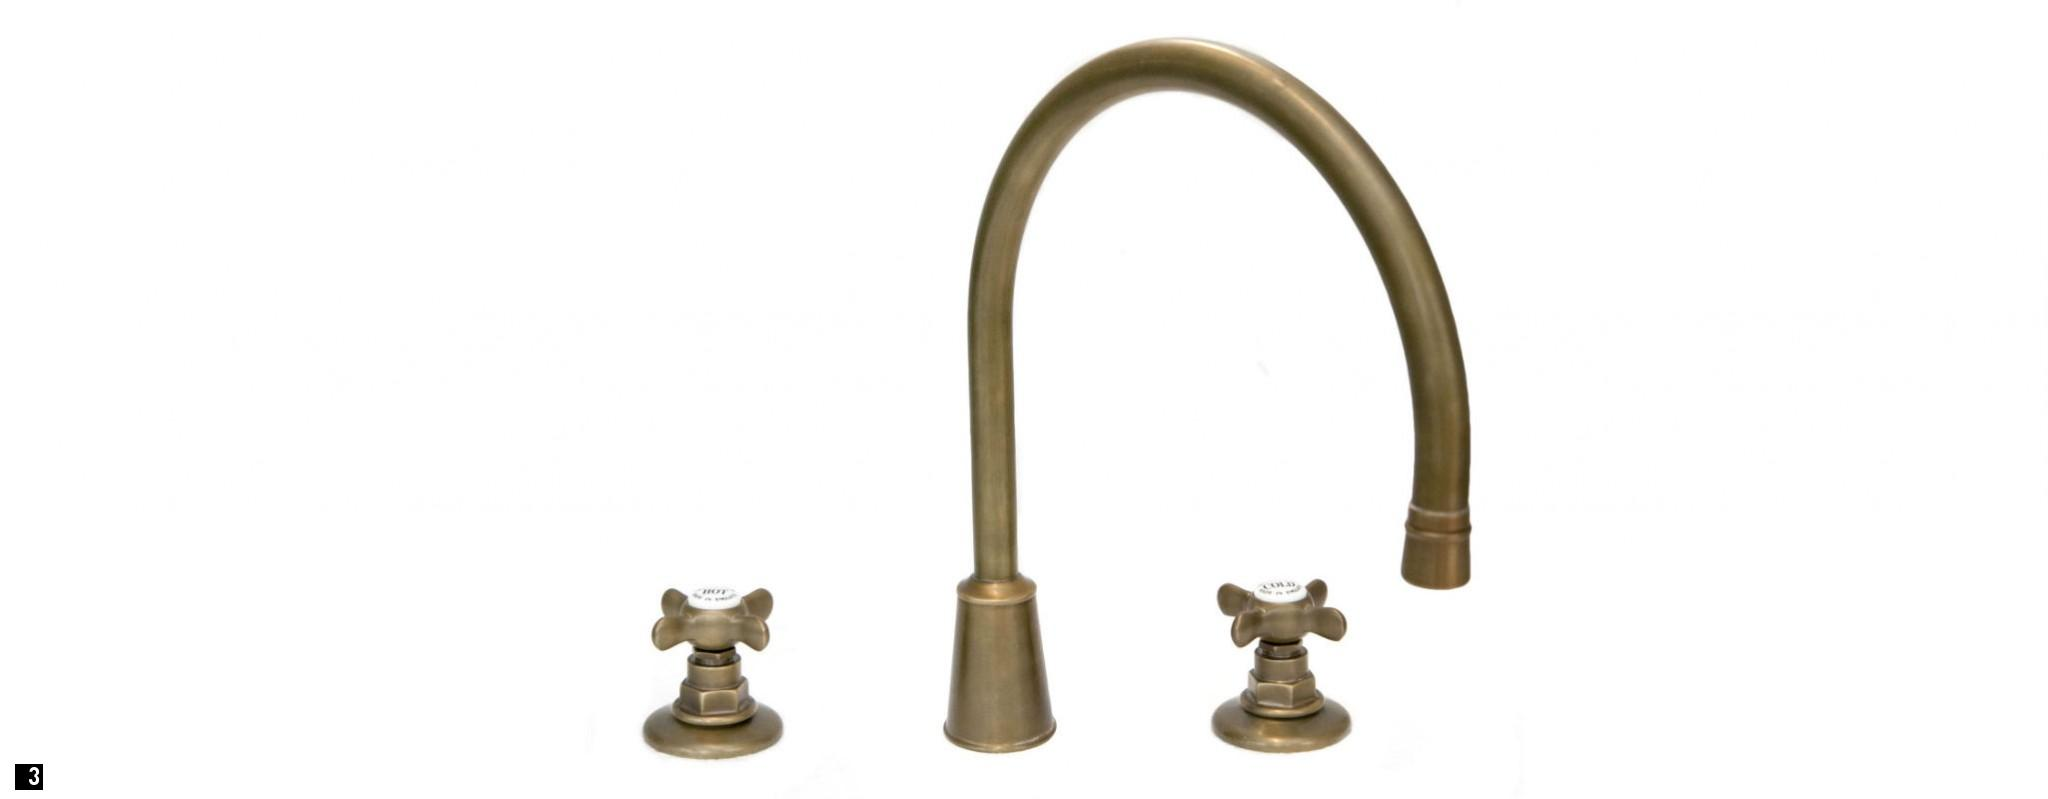 Weathered Brass Kitchen Taps and Brass and Copper Bib Taps, Bespoke Copper Bib Taps